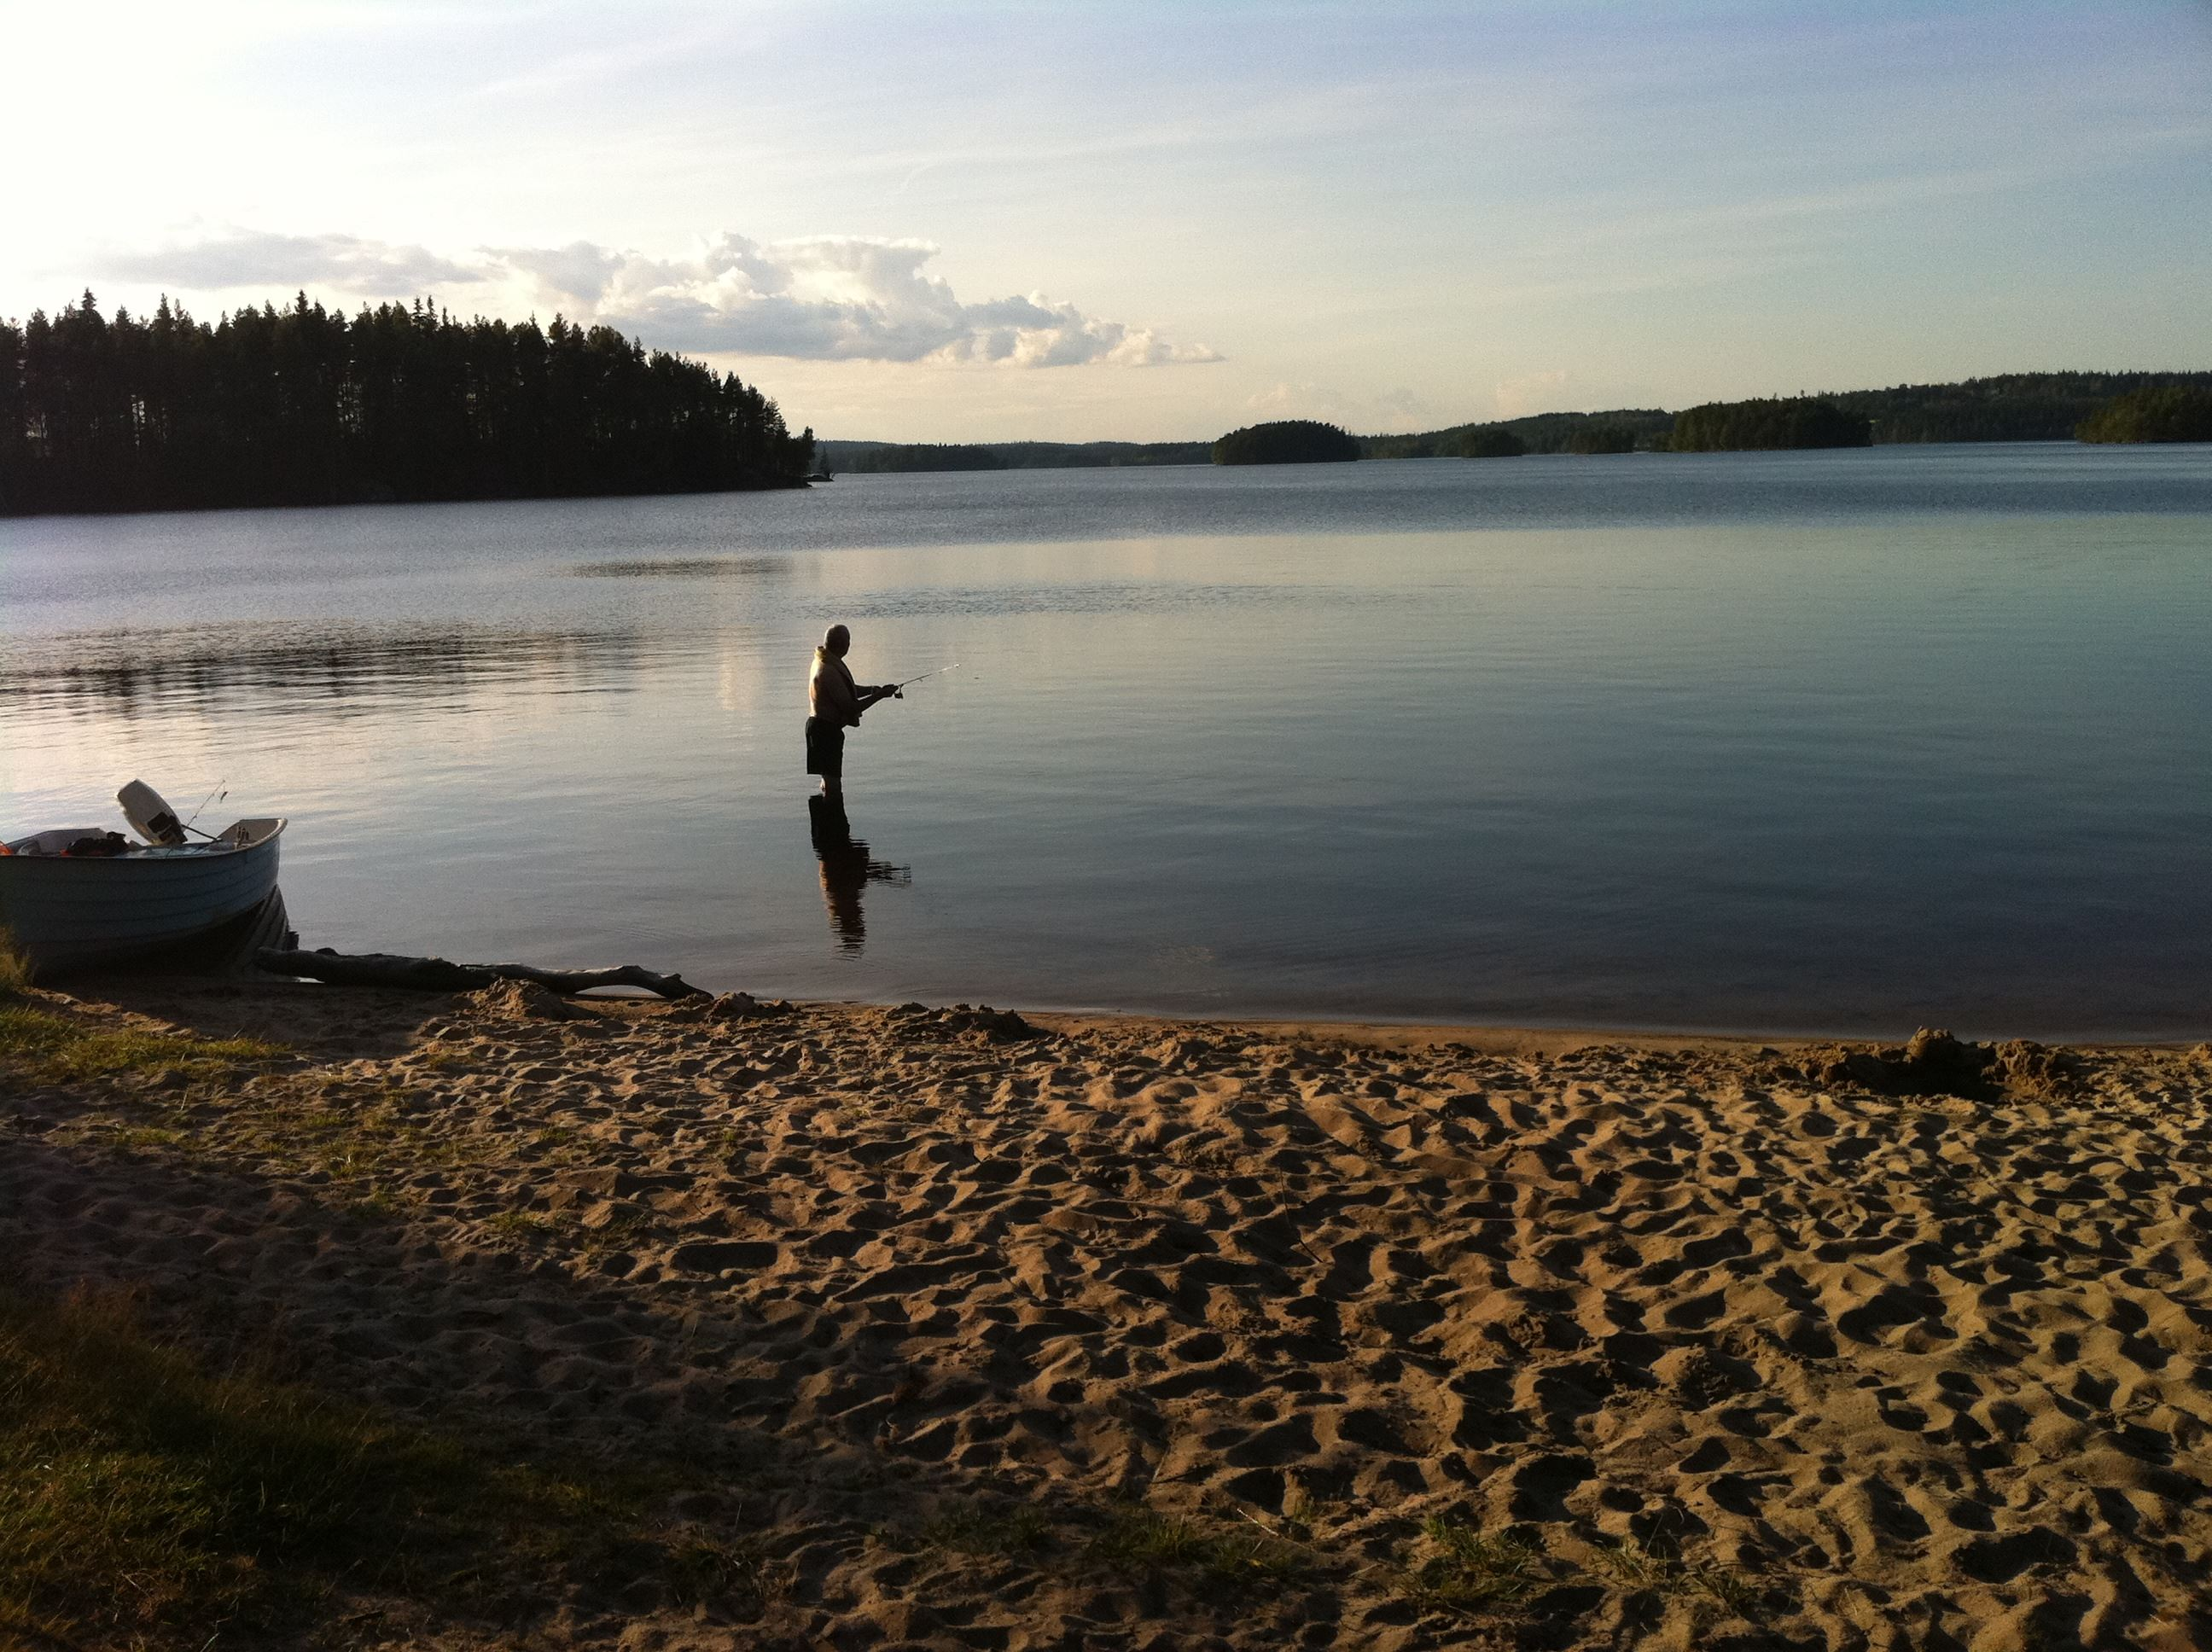 © Gislaveds kommun, Fishing in Gislaved area